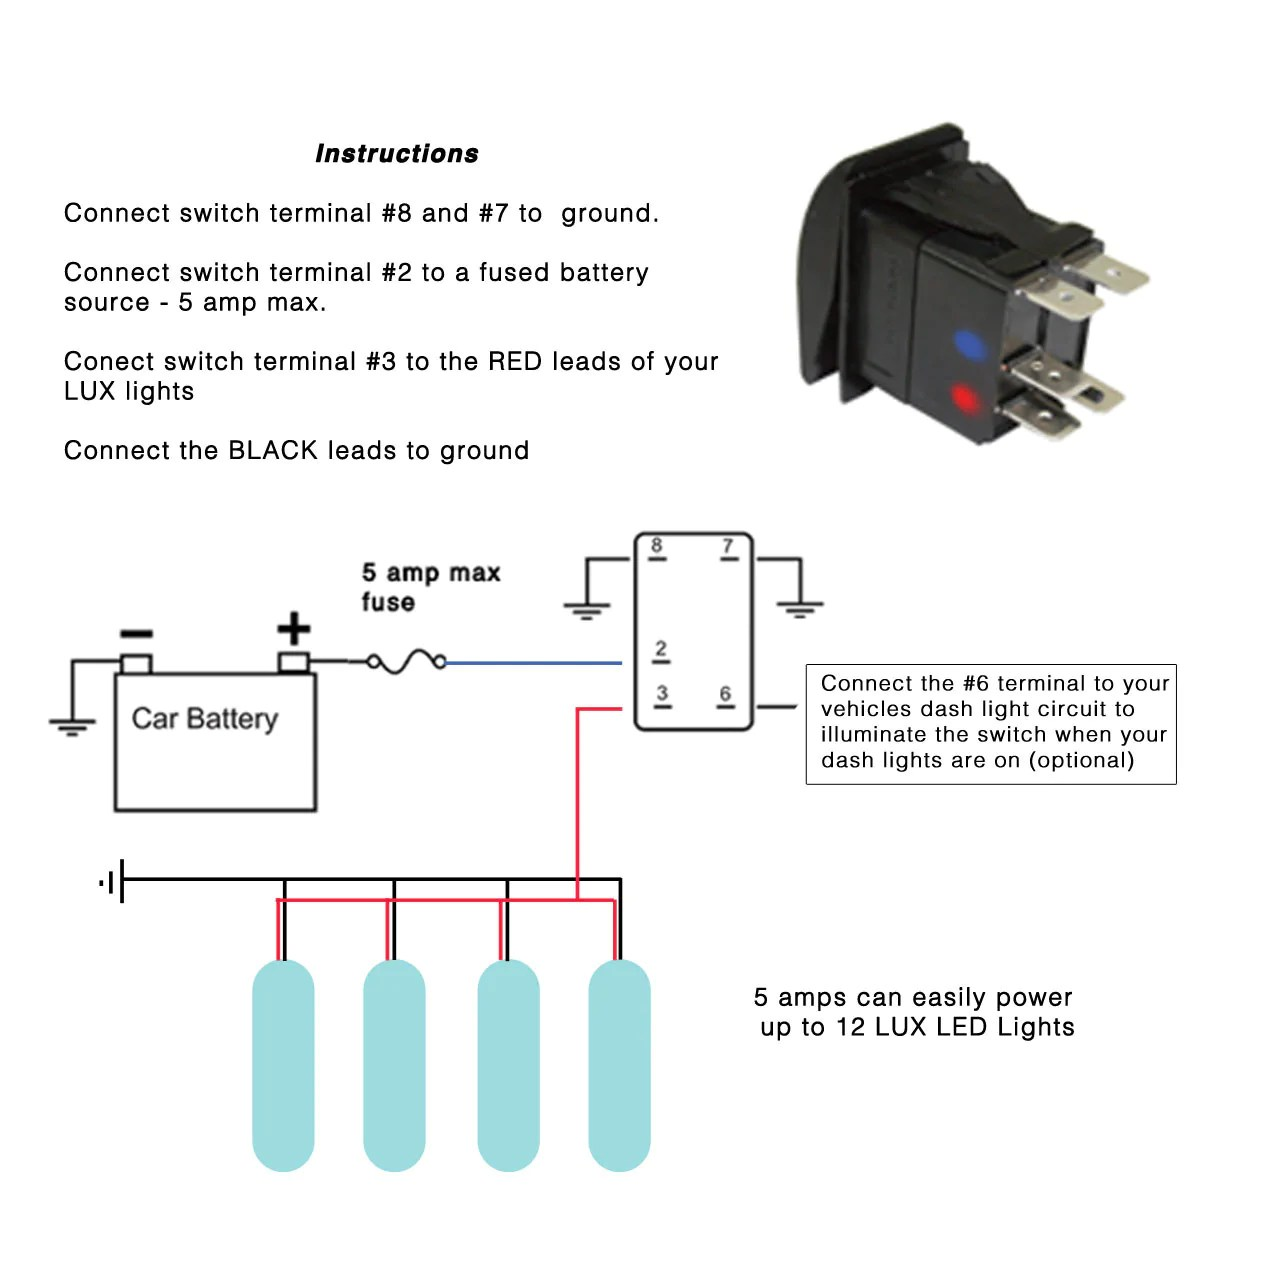 3 position toggle switch on off wiring diagram 1993 chevy pickup led rock light lux logo rocker lighting systems